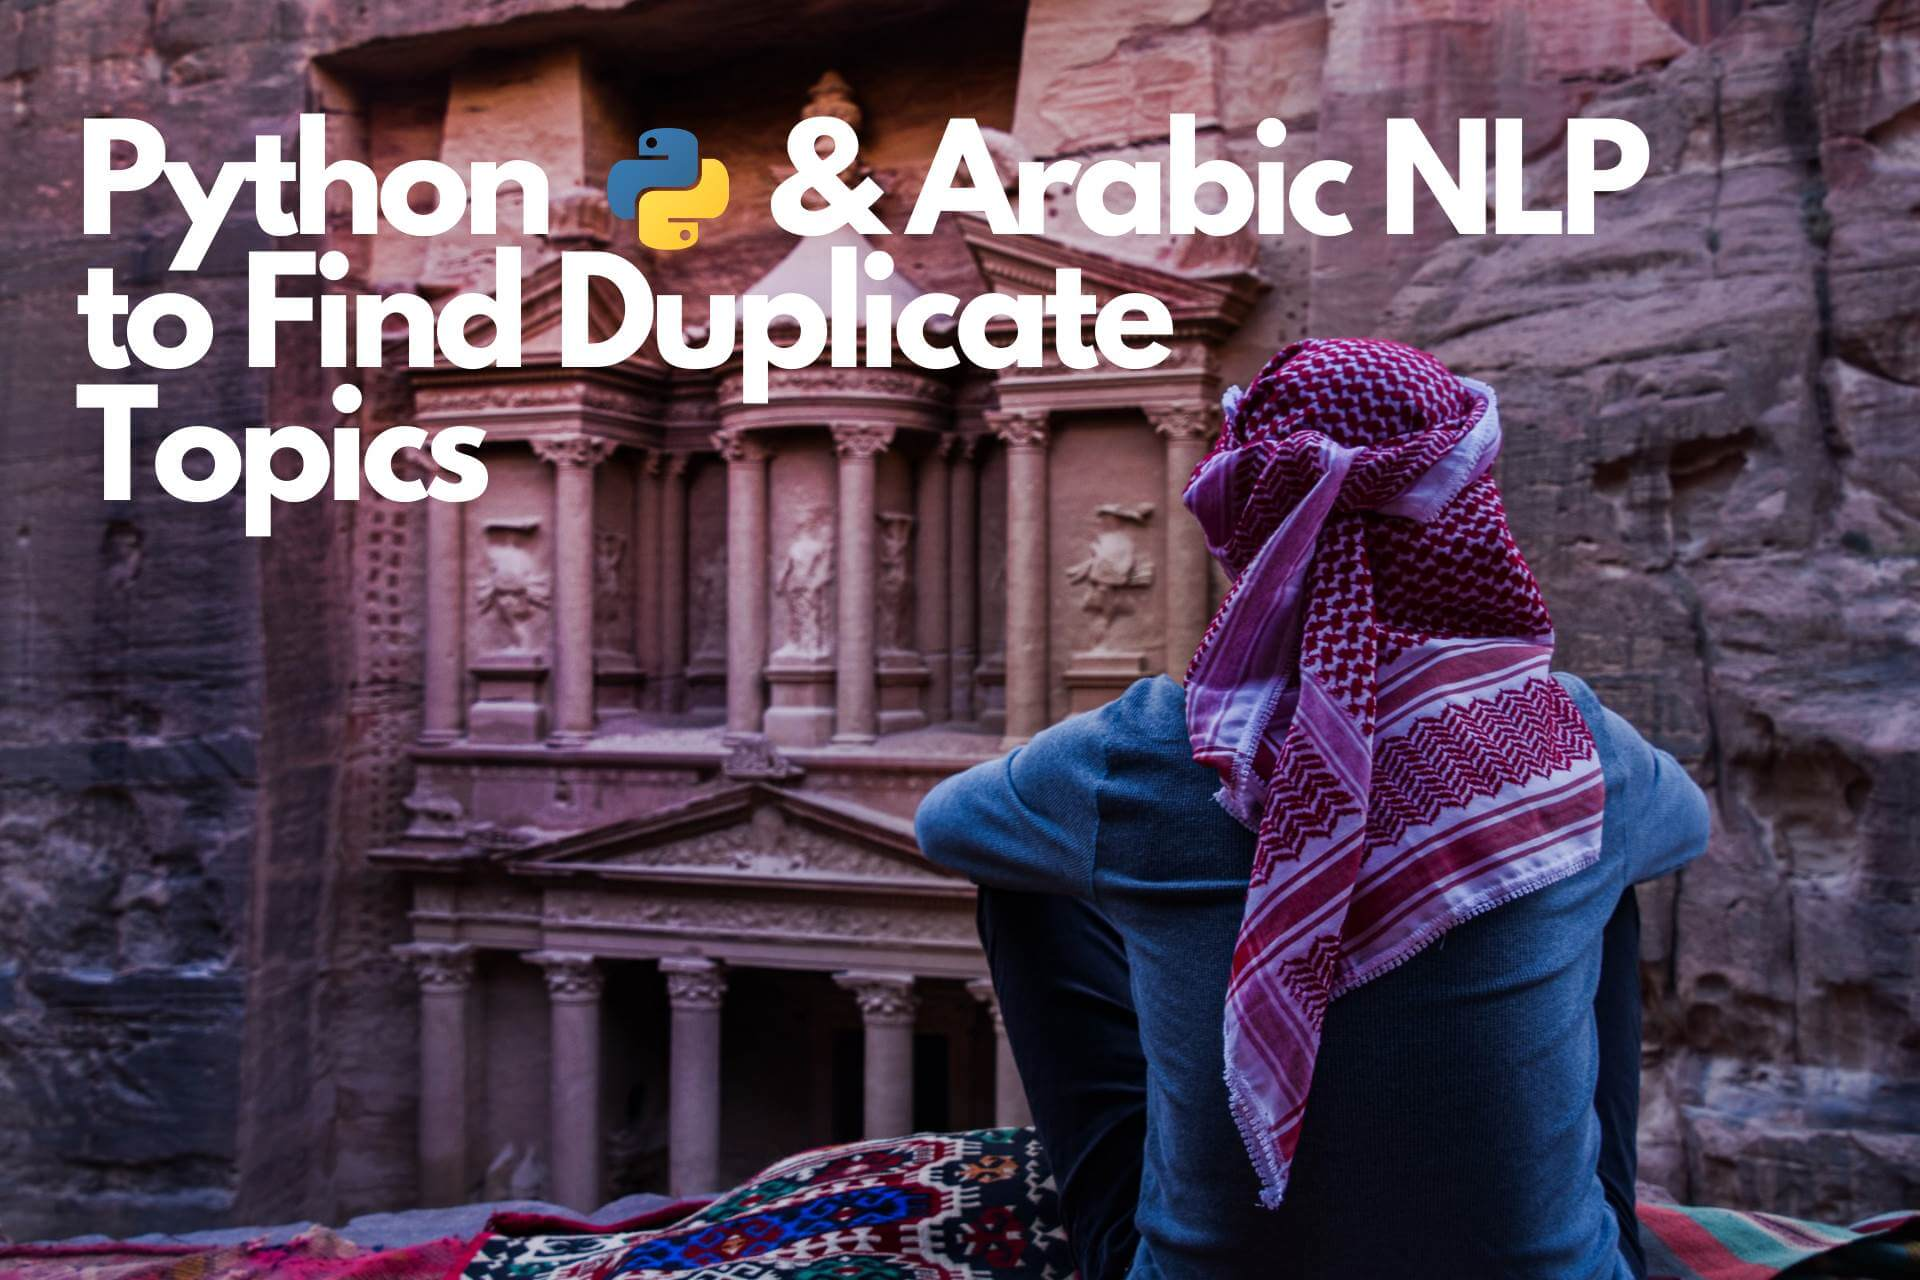 Python and Arabic NLP to Find Duplicate Topics and Articles